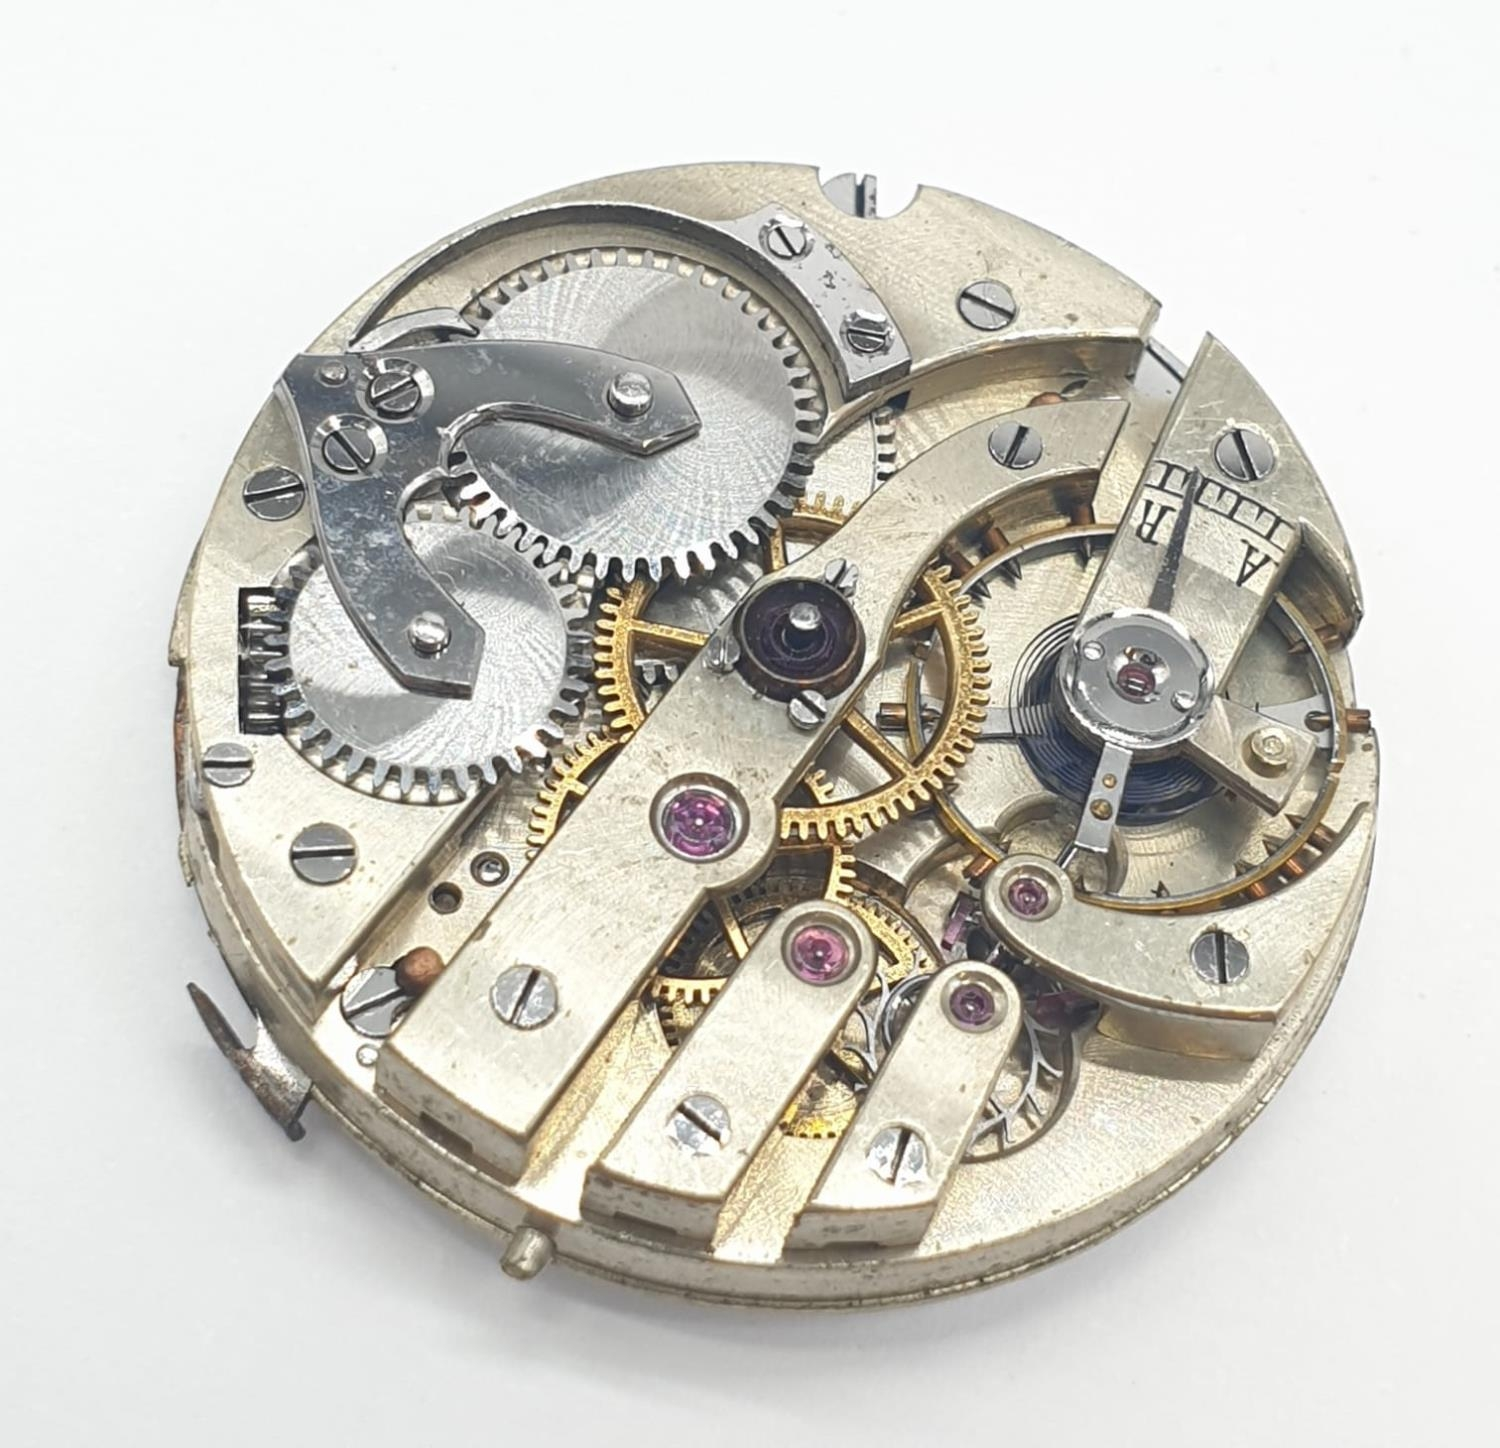 3 x Pocket Watch Movements. 3.0 , 3.5 and 4.5 cm. - Image 4 of 10